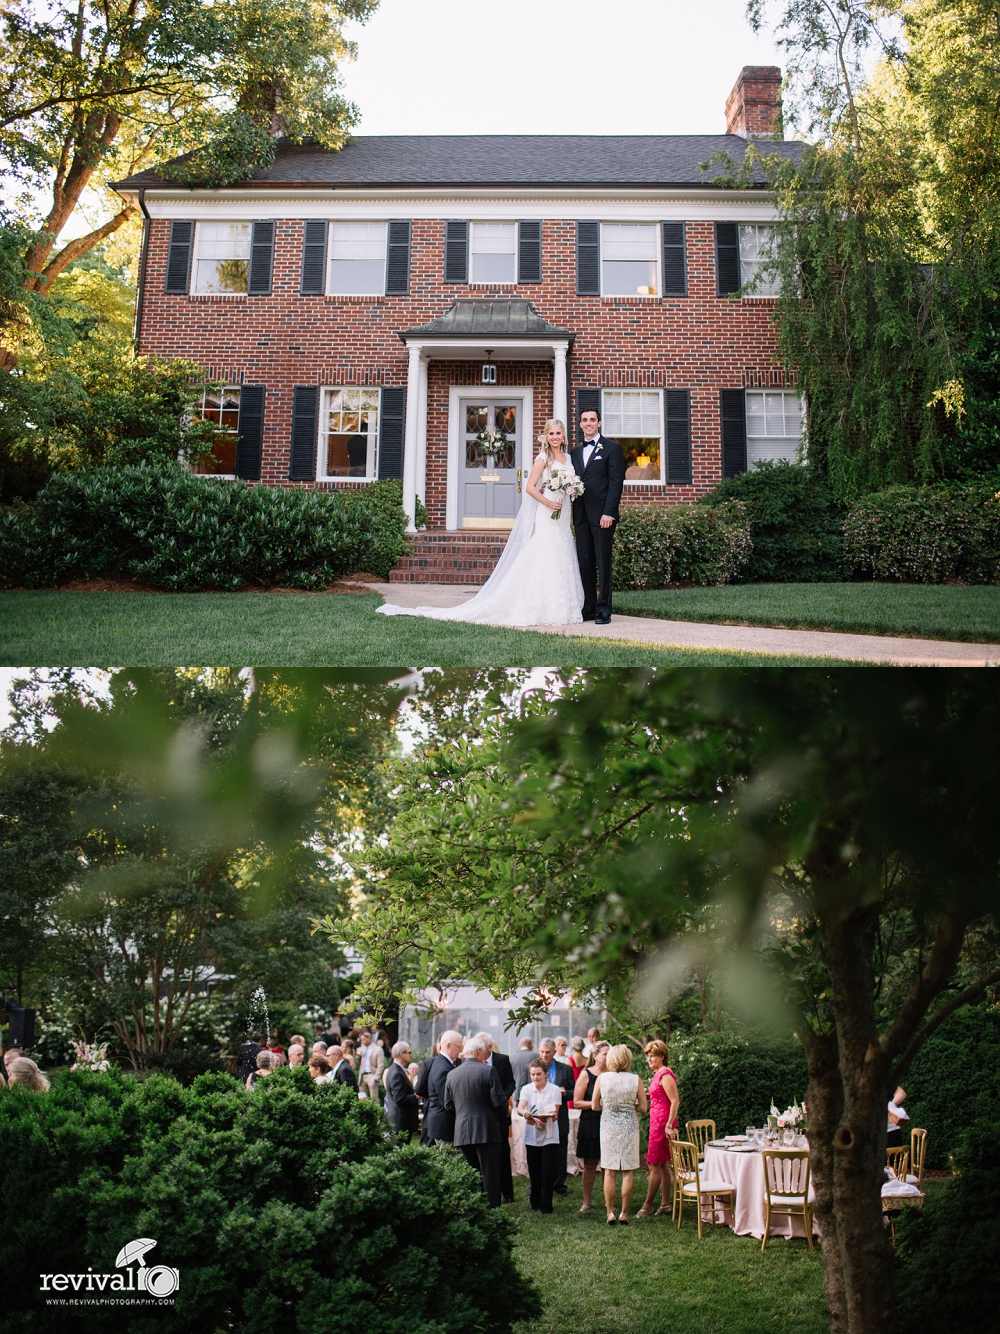 Charmant Audrey + Joe: A Classic Southern Wedding Celebration In Hickory, North  Carolina NC Wedding